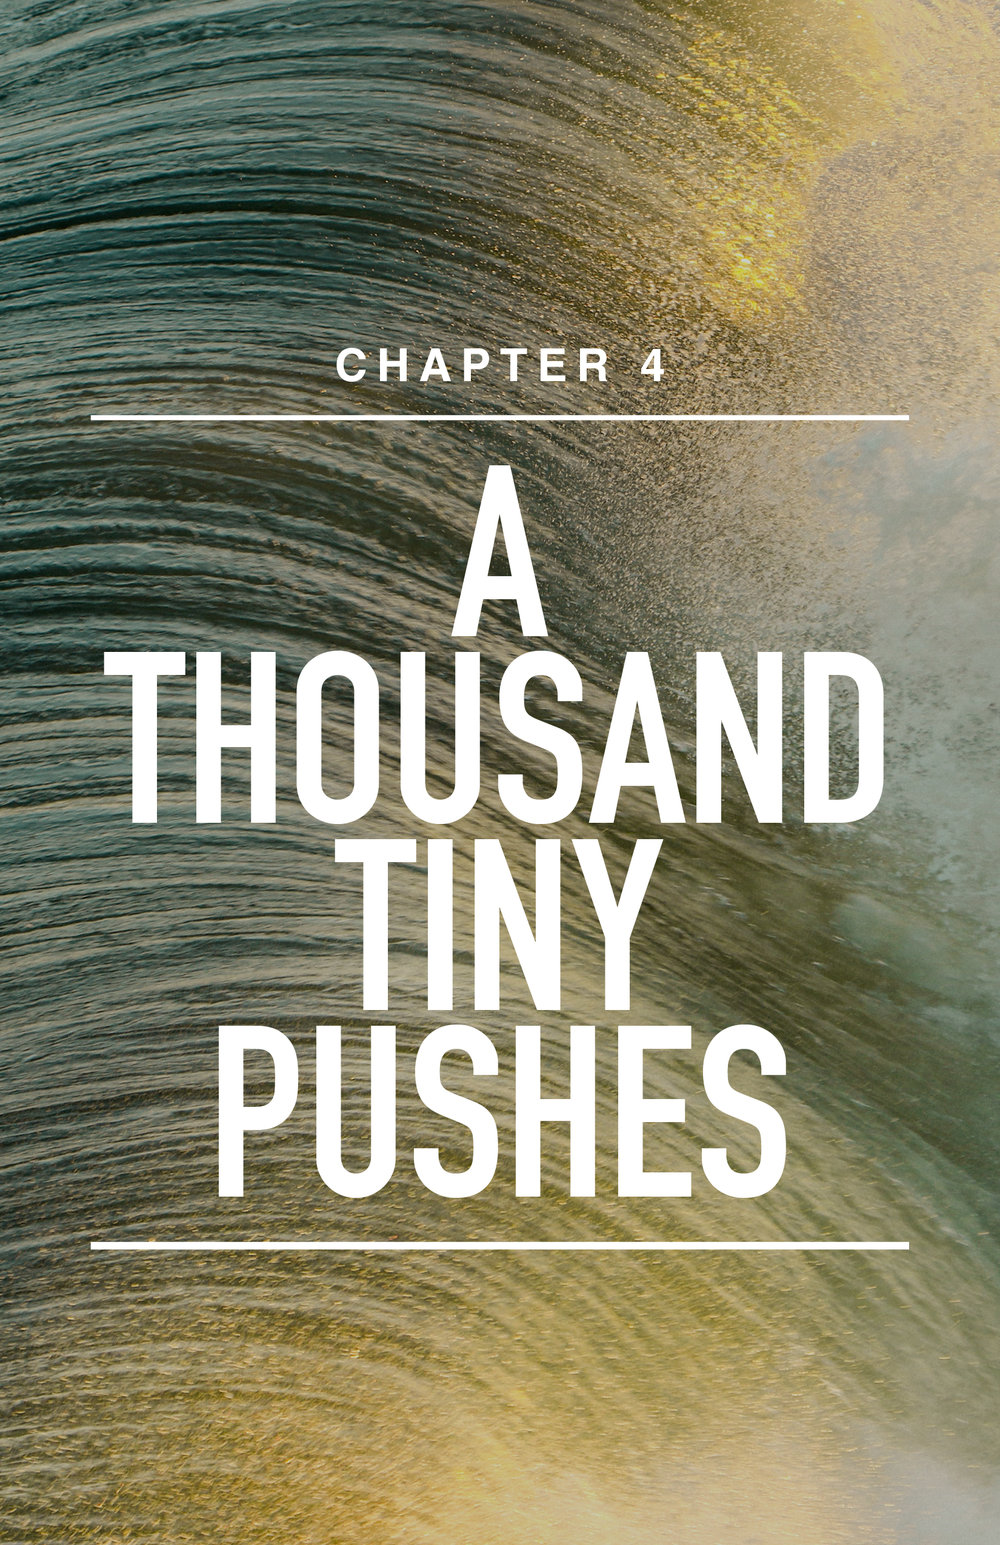 CH 4: A Thousand Tiny Pushes